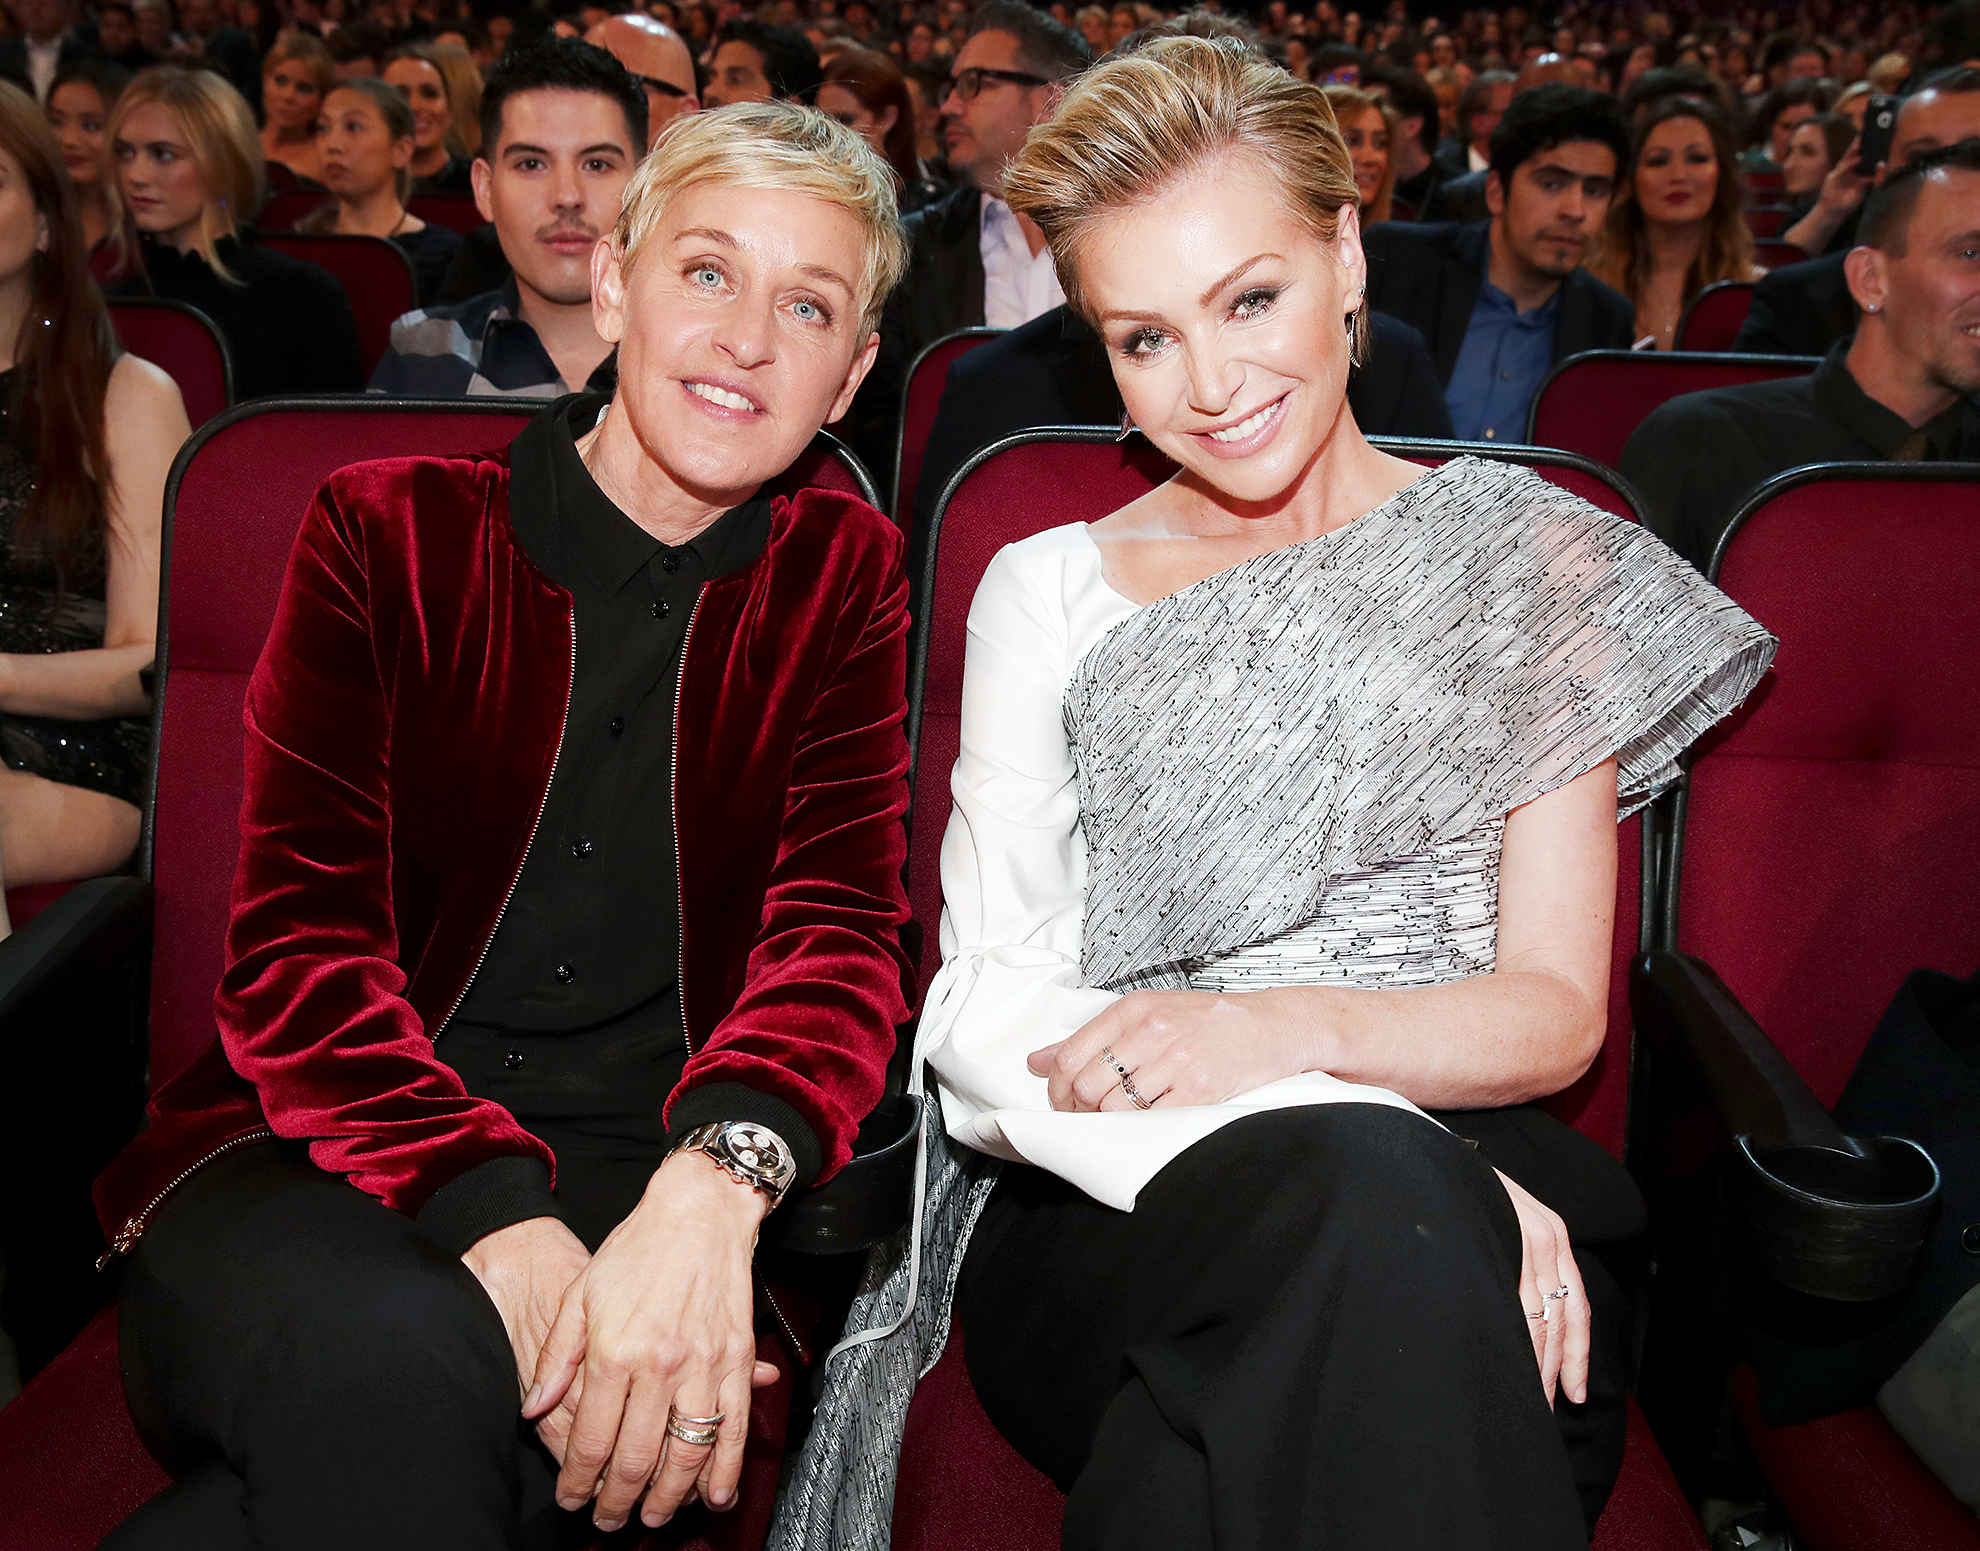 Portia de Rossi Urging Ellen DeGeneres to Leave Talk Show - Ellen DeGeneres and actrss Portia de Rossi attend the People's Choice Awards at Microsoft Theater on January 18, 2017 in Los Angeles.